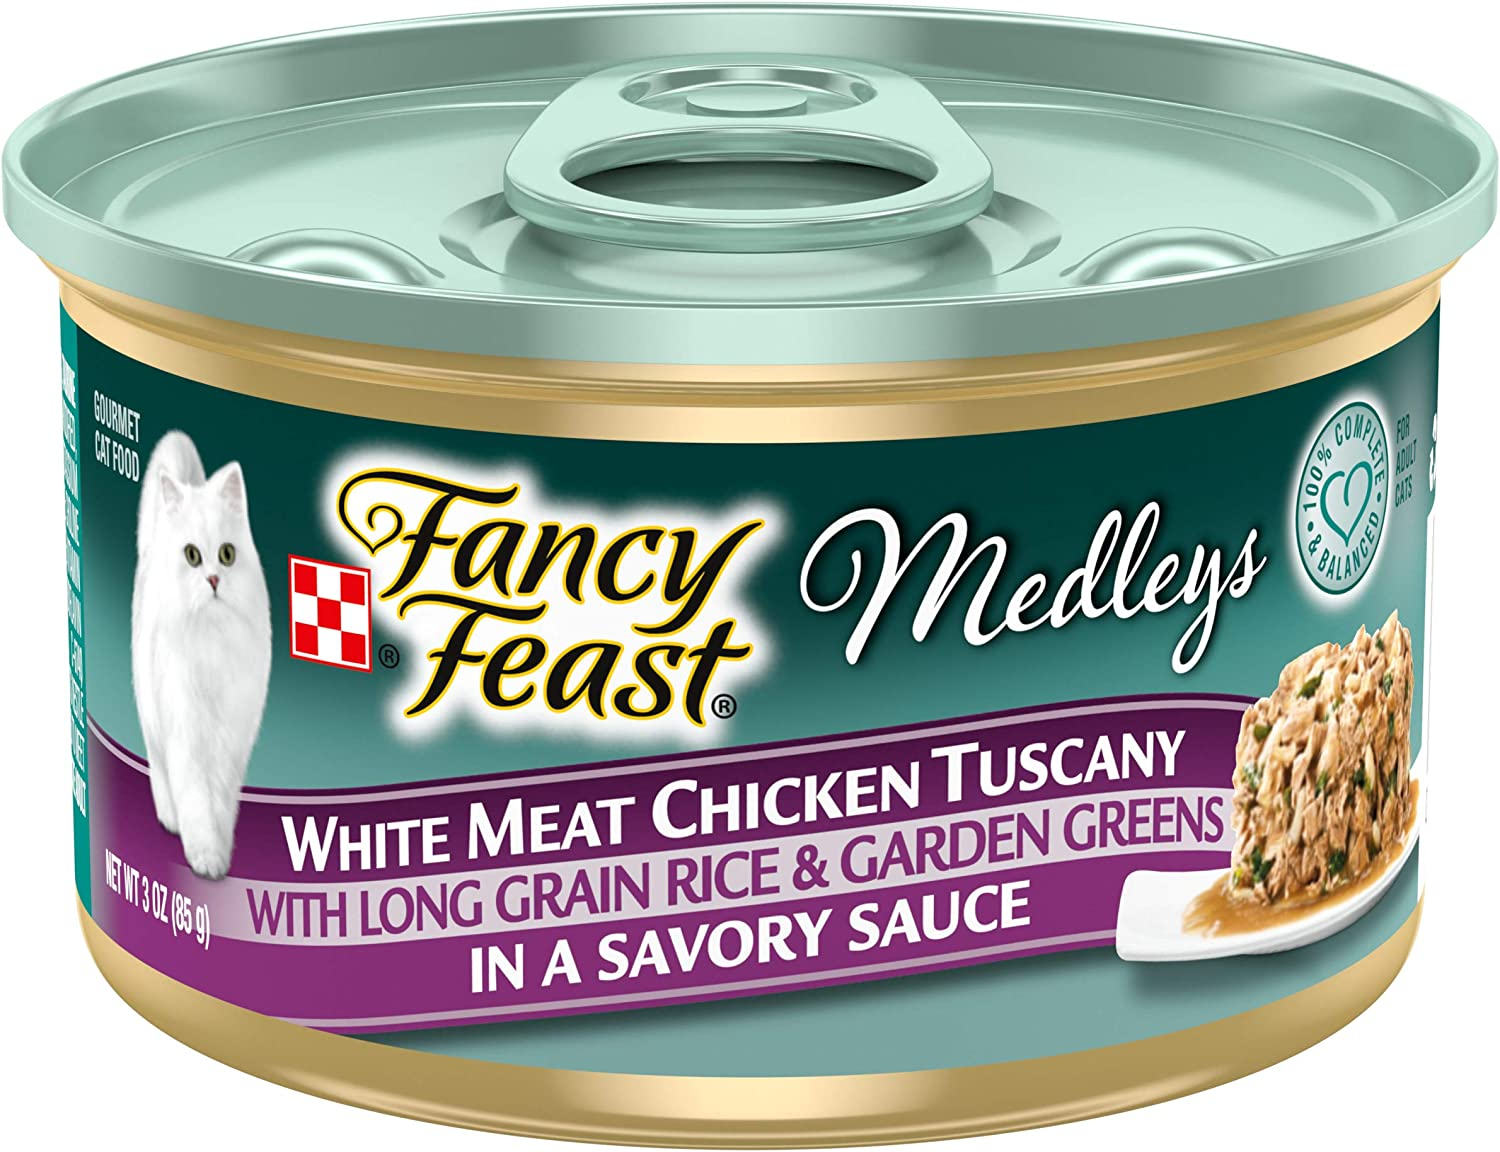 Purina Fancy Feast Wet Cat Food, Medleys White Meat Chicken Tuscany with Long Grain Rice & Greens